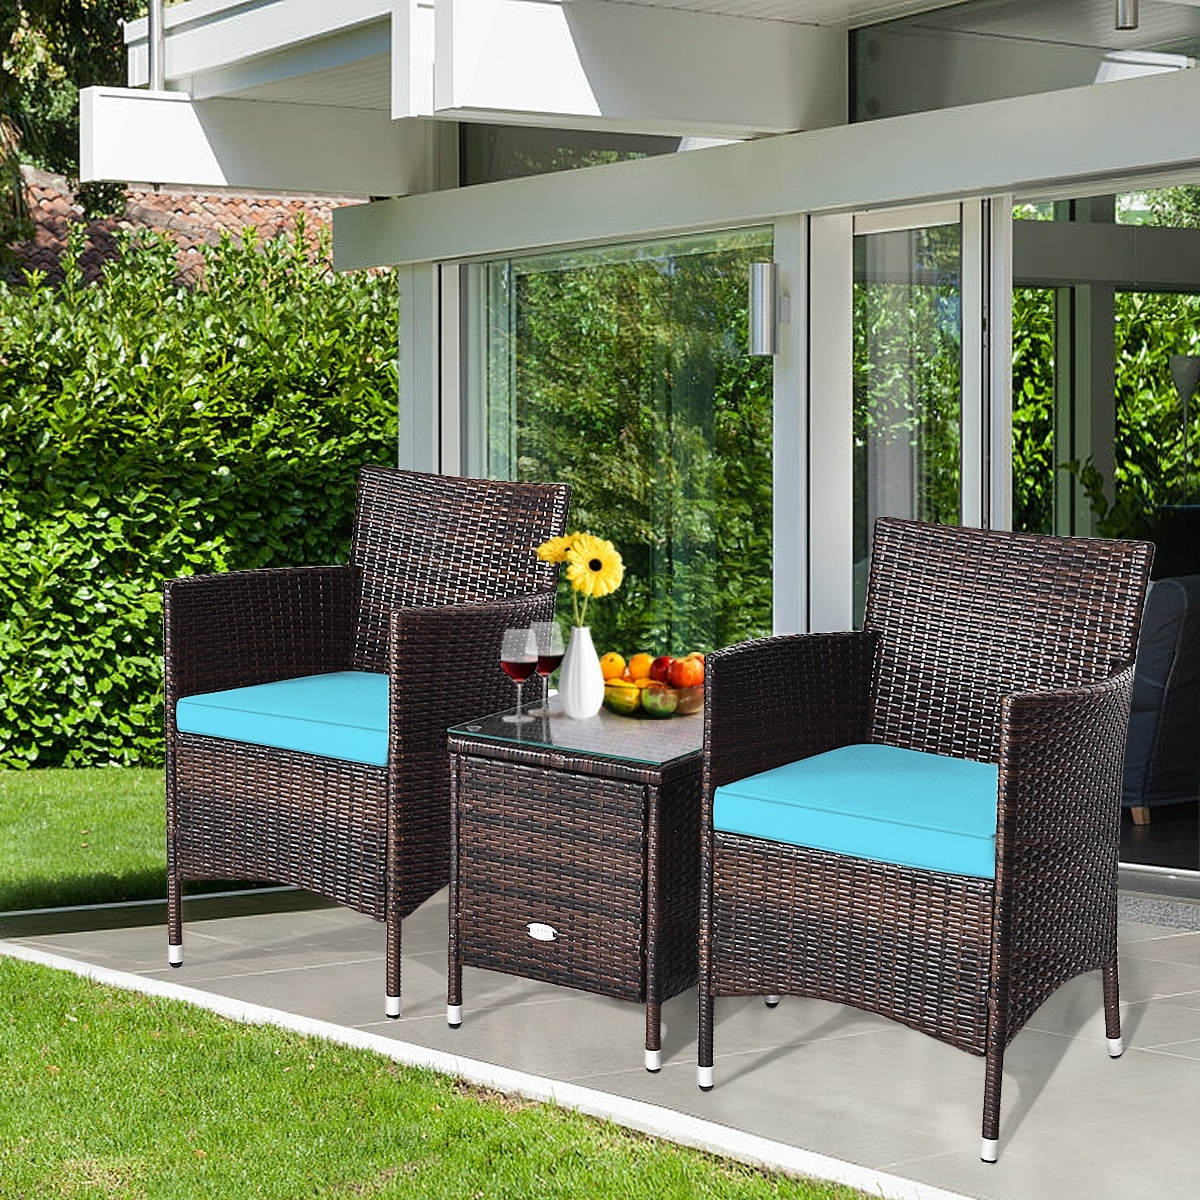 Costway Outdoor 3 PCS Rattan Wicker Furniture Sets Chairs Coffee Table - On Sale - Overstock - 30994680